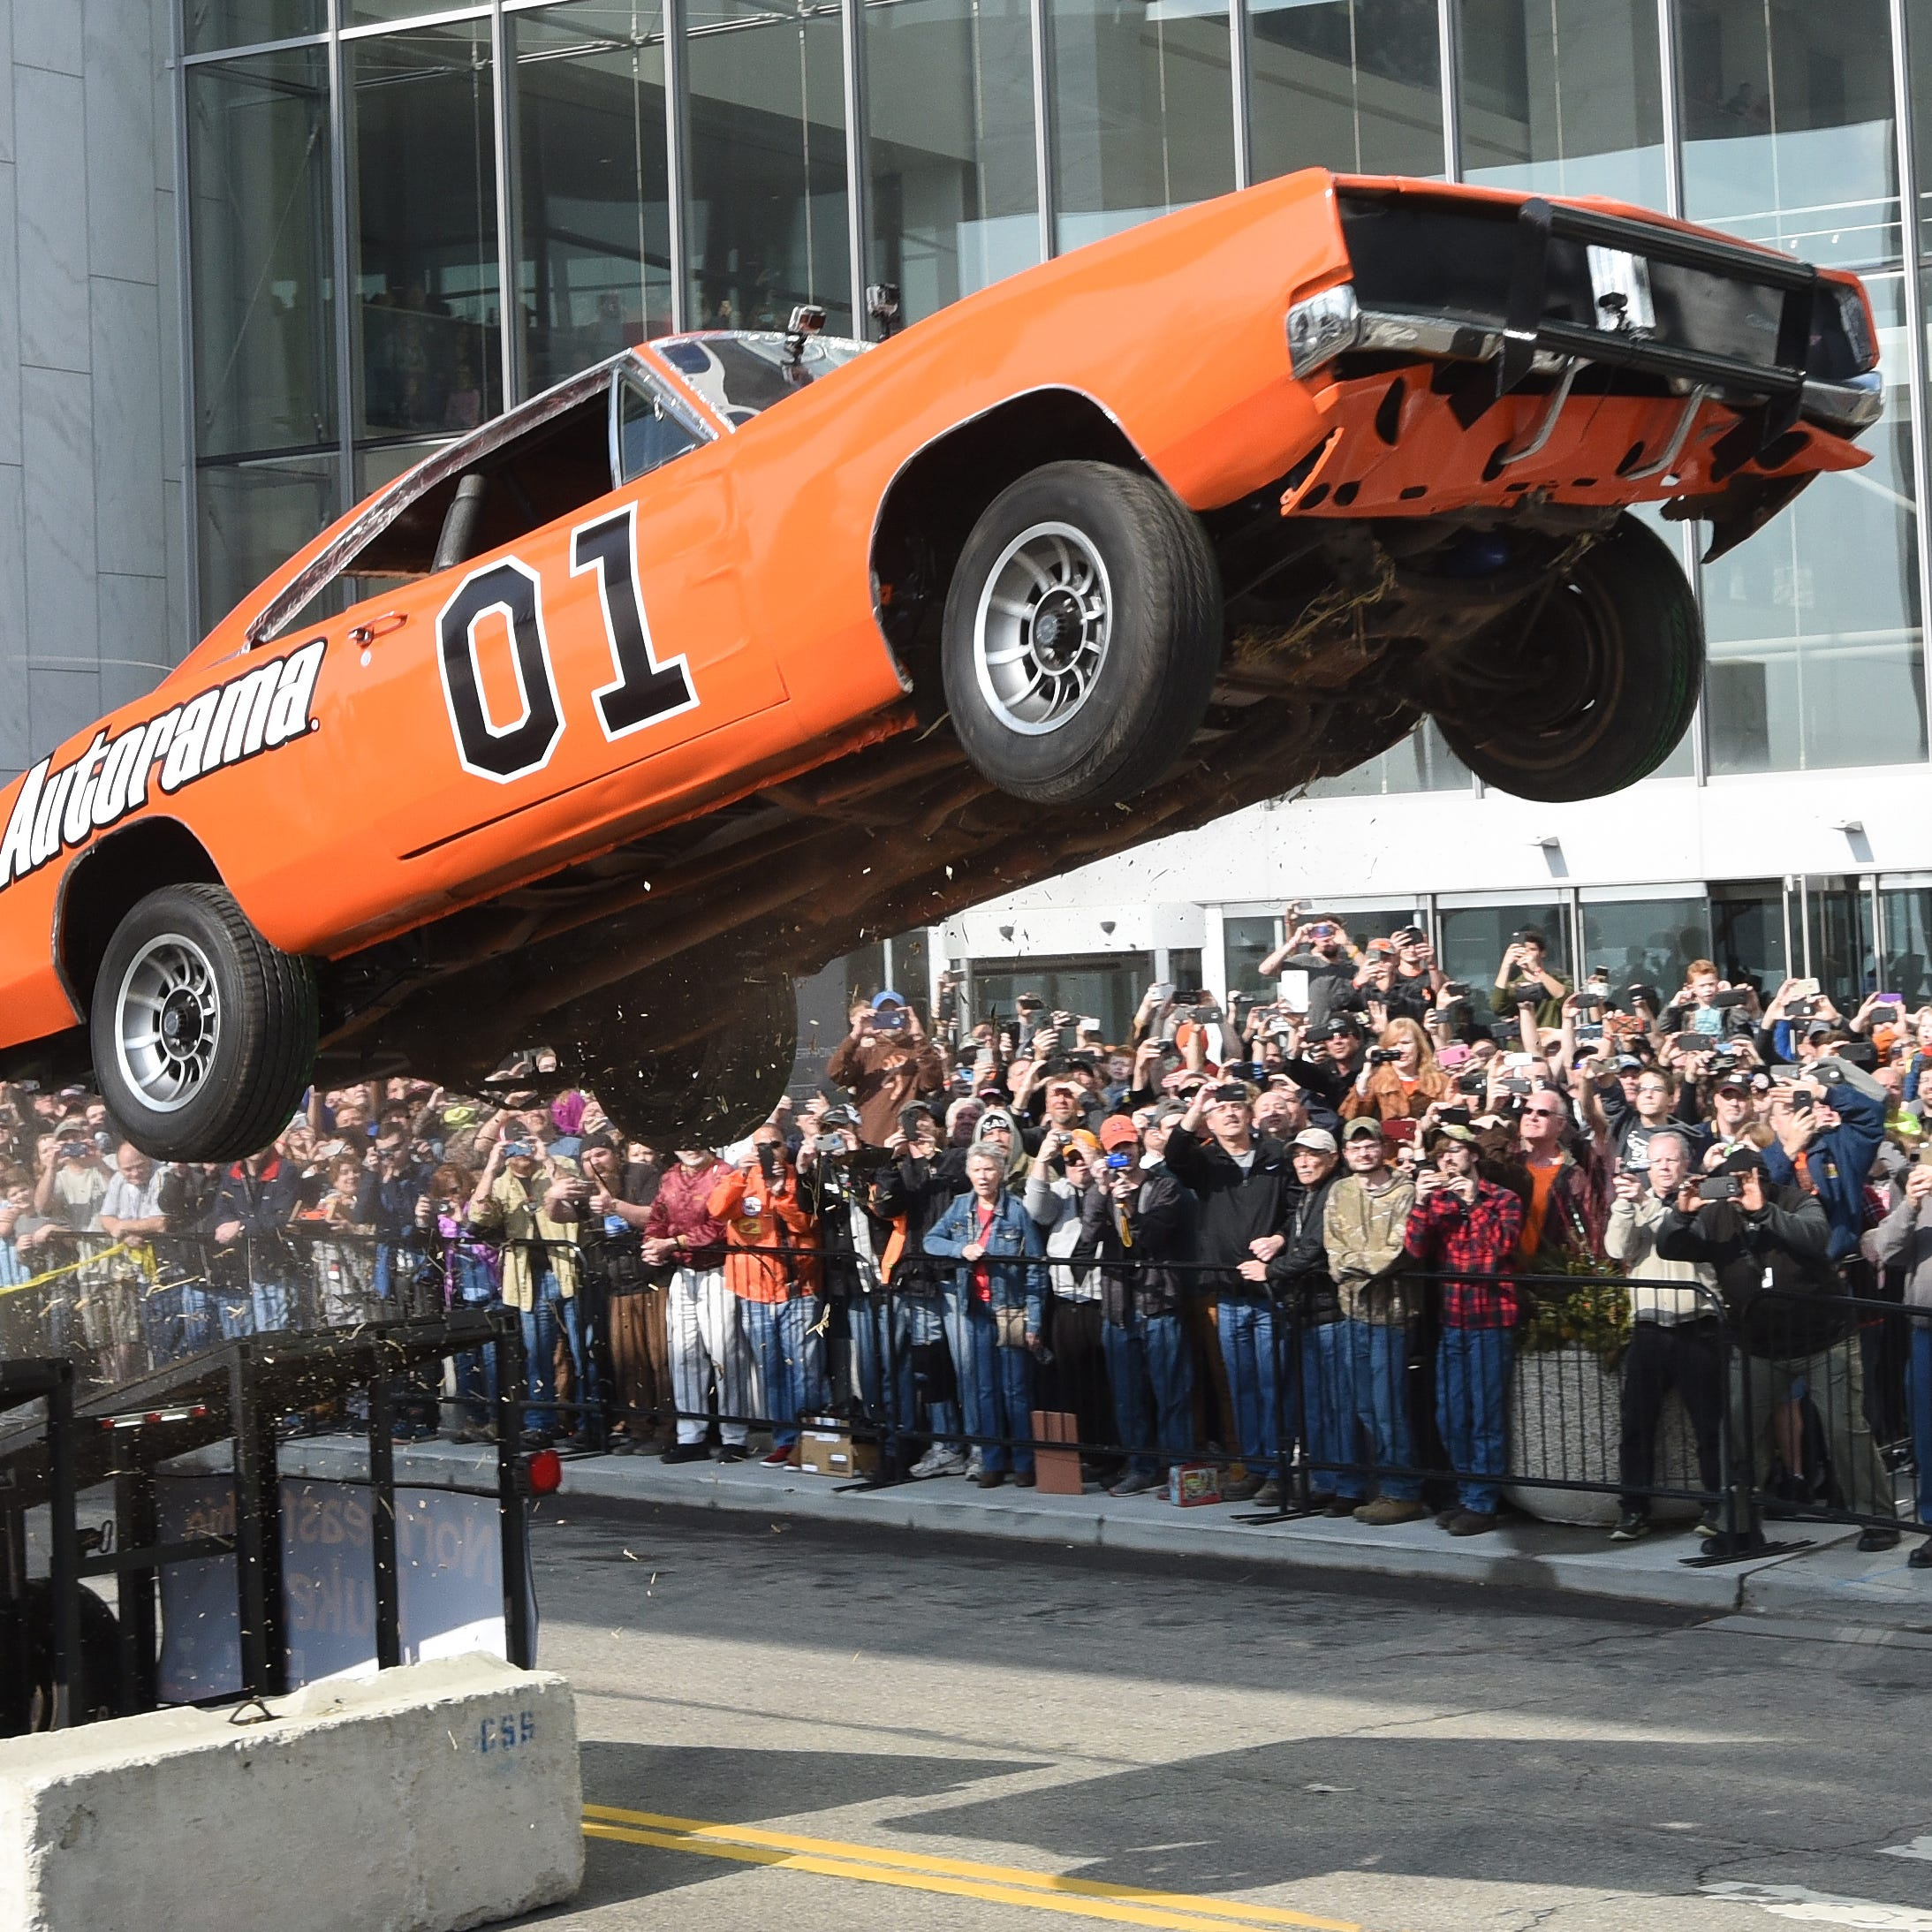 Detroit council grounds Autorama jump due to Confederate flags